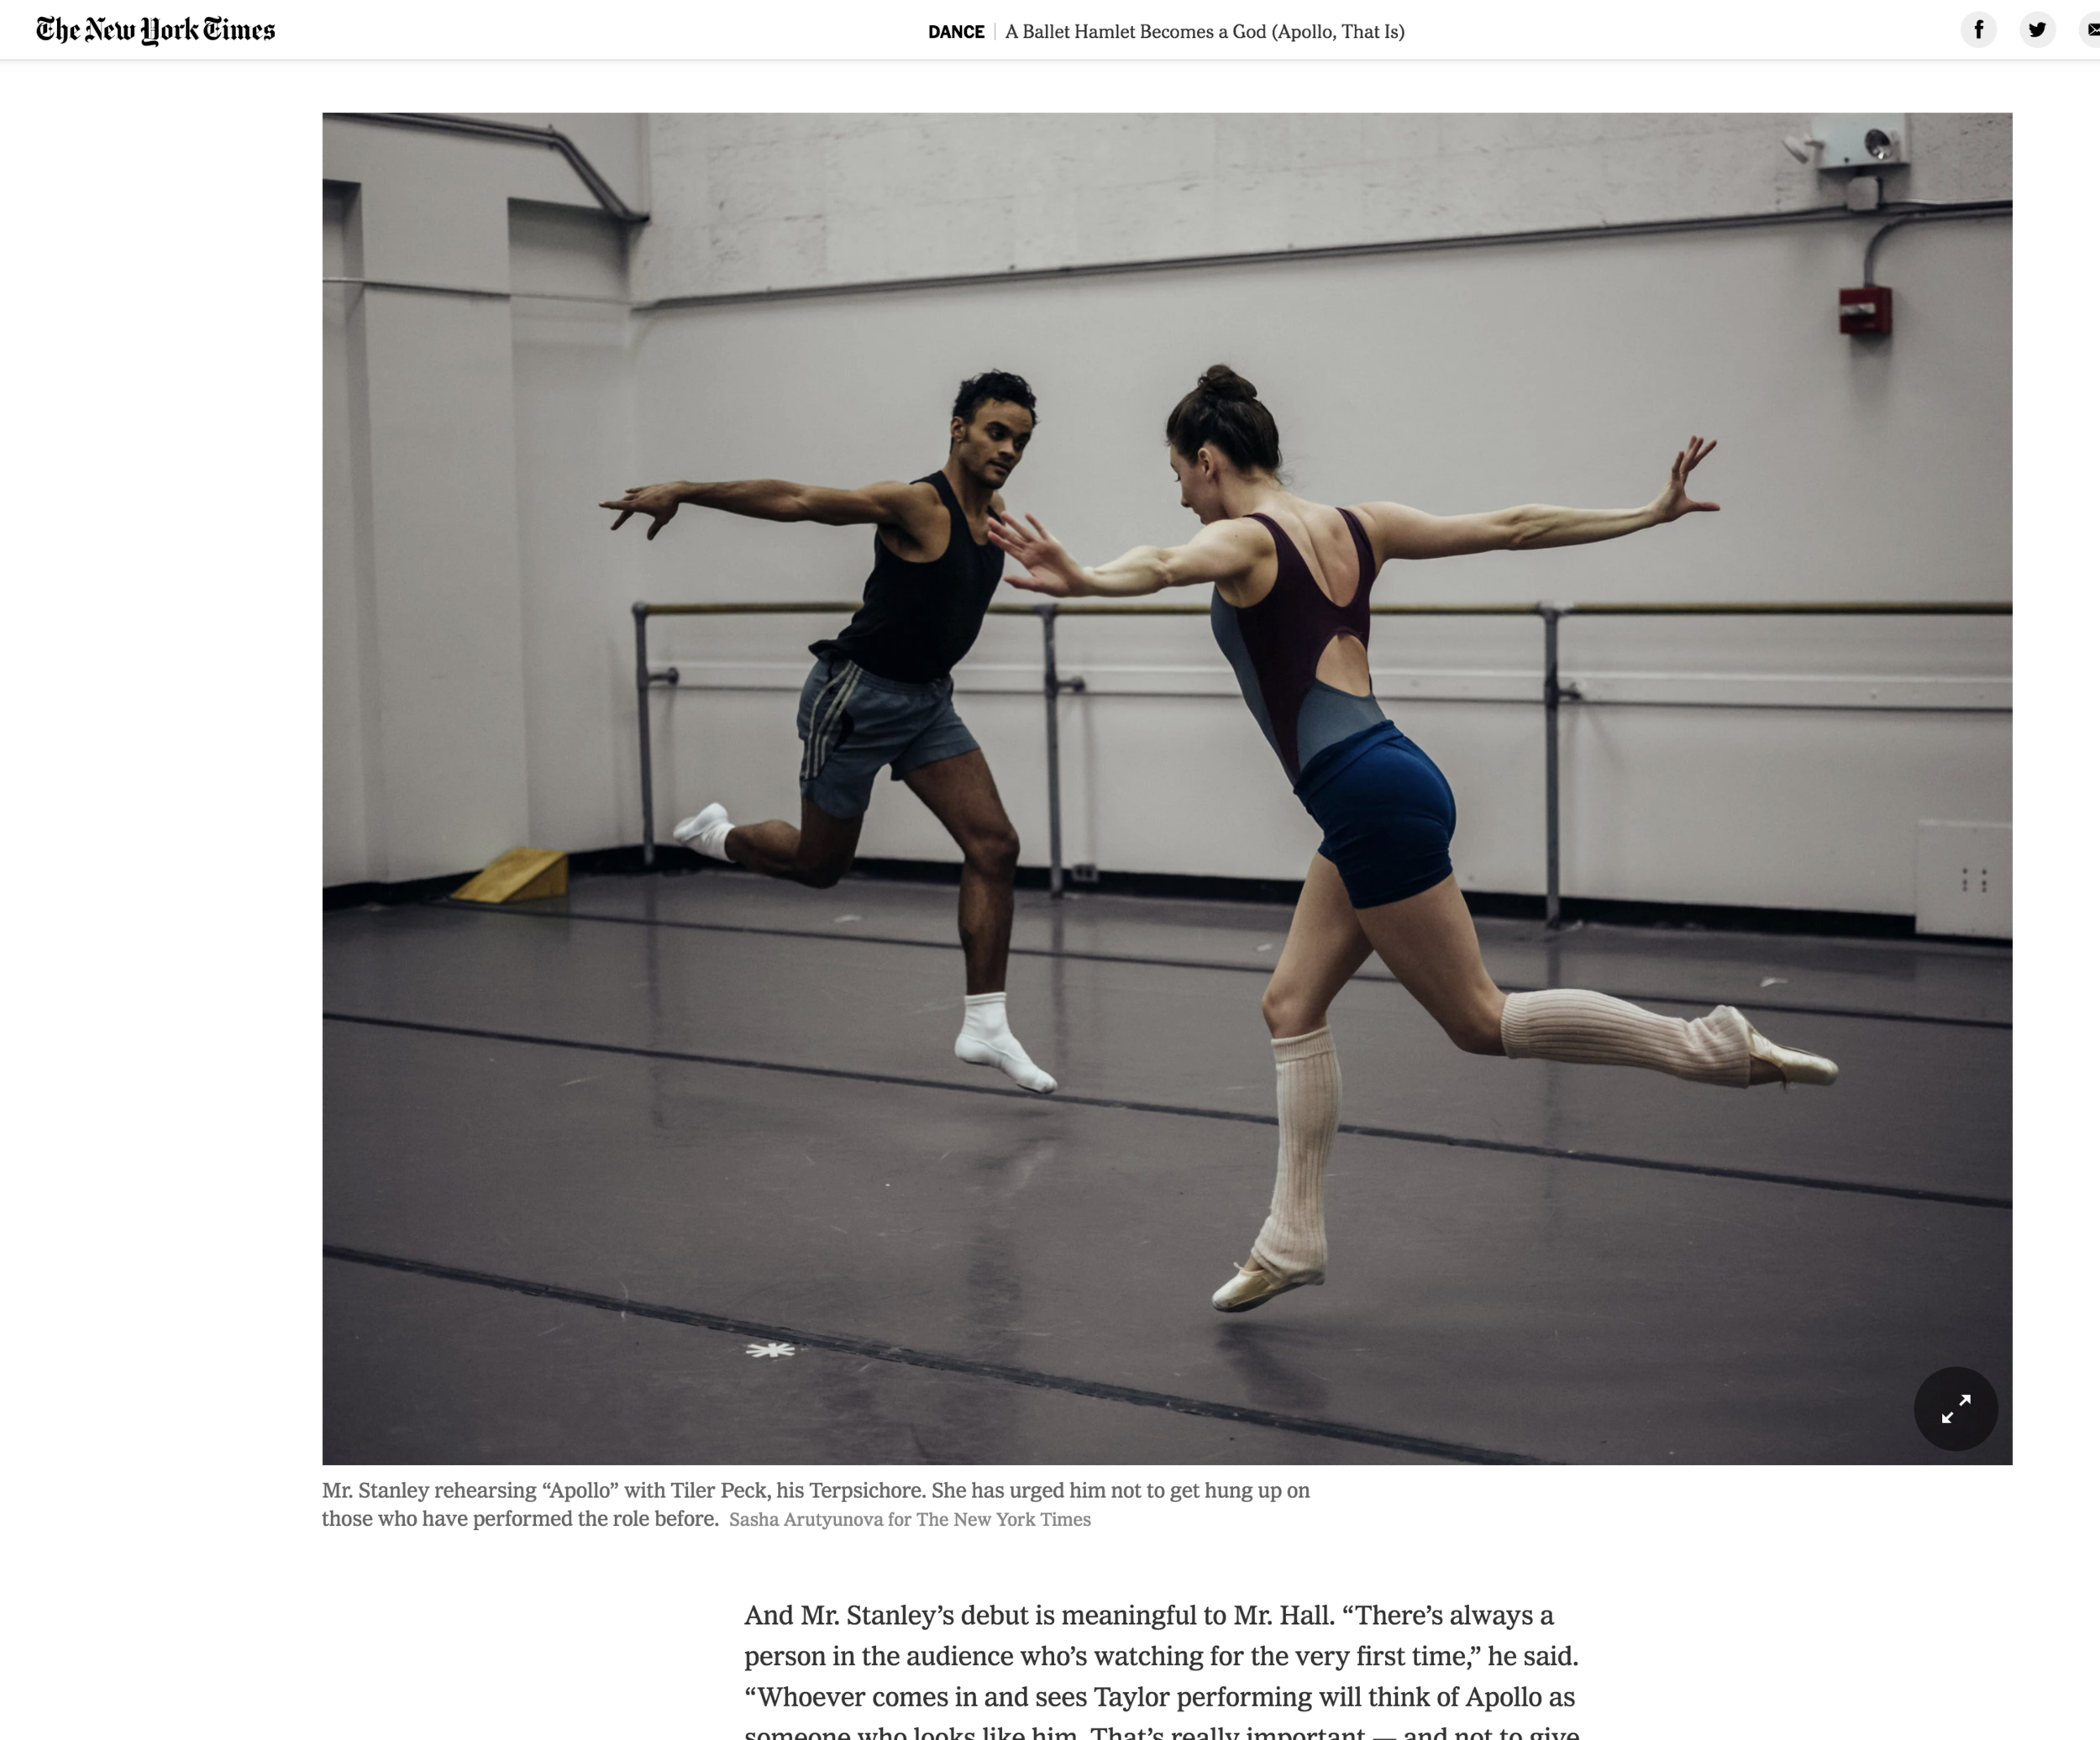 "Rock Alumnus, and  New York City Ballet  Principal Dancer, Taylor Stanley will be performing one of the most difficult and storied male roles, Apollo in Stravinsky and Balanchine's Greek Trilogy Ballet through Feb 2nd. Here is a wonderfully insightful article by  The New York Times  on his journey into the role.  – as he faces the challenge of performing ""Apollo,"" he said he realized something: Maybe all this angst is part of maturing, not just as a dancer but as a person. ""Is the pressure necessary?"" he said. ""Is it unnecessary?"" He paused. He thought. He seemed, as he sometimes does, like a dance-world Hamlet.–  Congratulations and Merde on a fantastic performance this coming week, Taylor Stanley. We are so proud of your achievements."